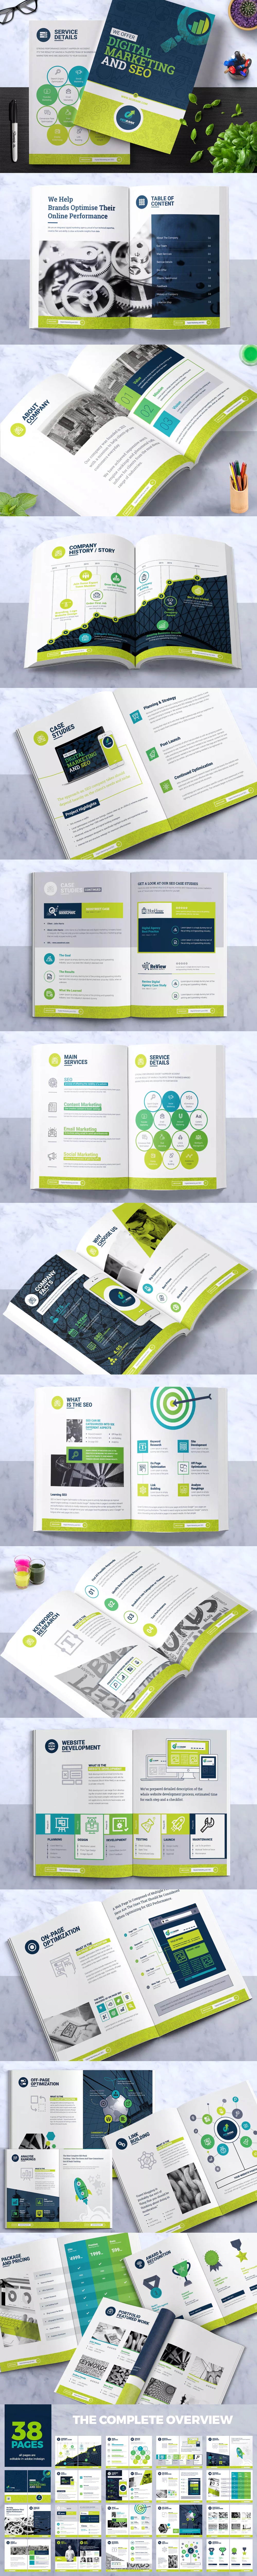 Bi-Fold Brochure Template for SEO (Search Engine) InDesign INDD ...